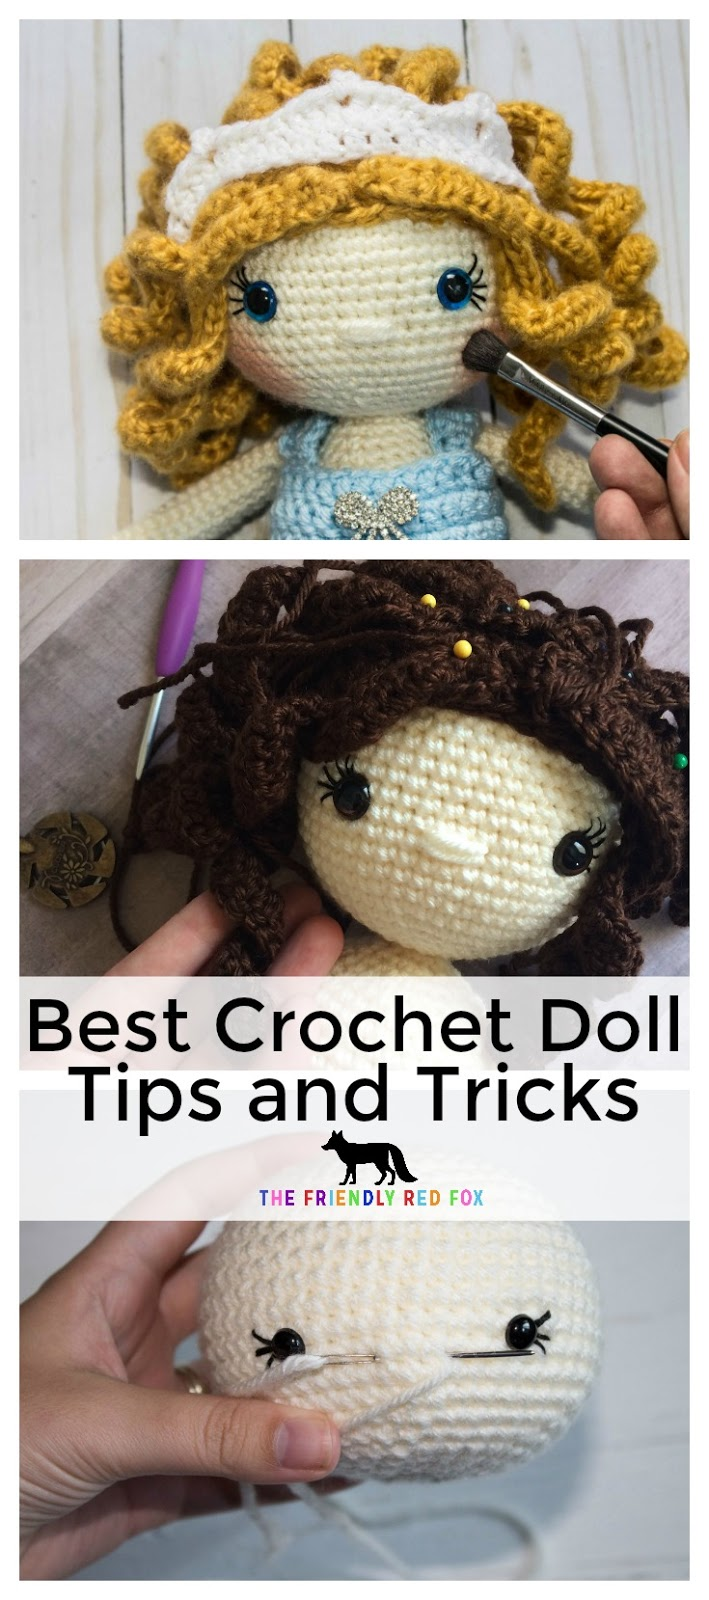 The Most Beautiful Amigurumi Doll Free Crochet Patterns | Kawaii ... | 1600x709